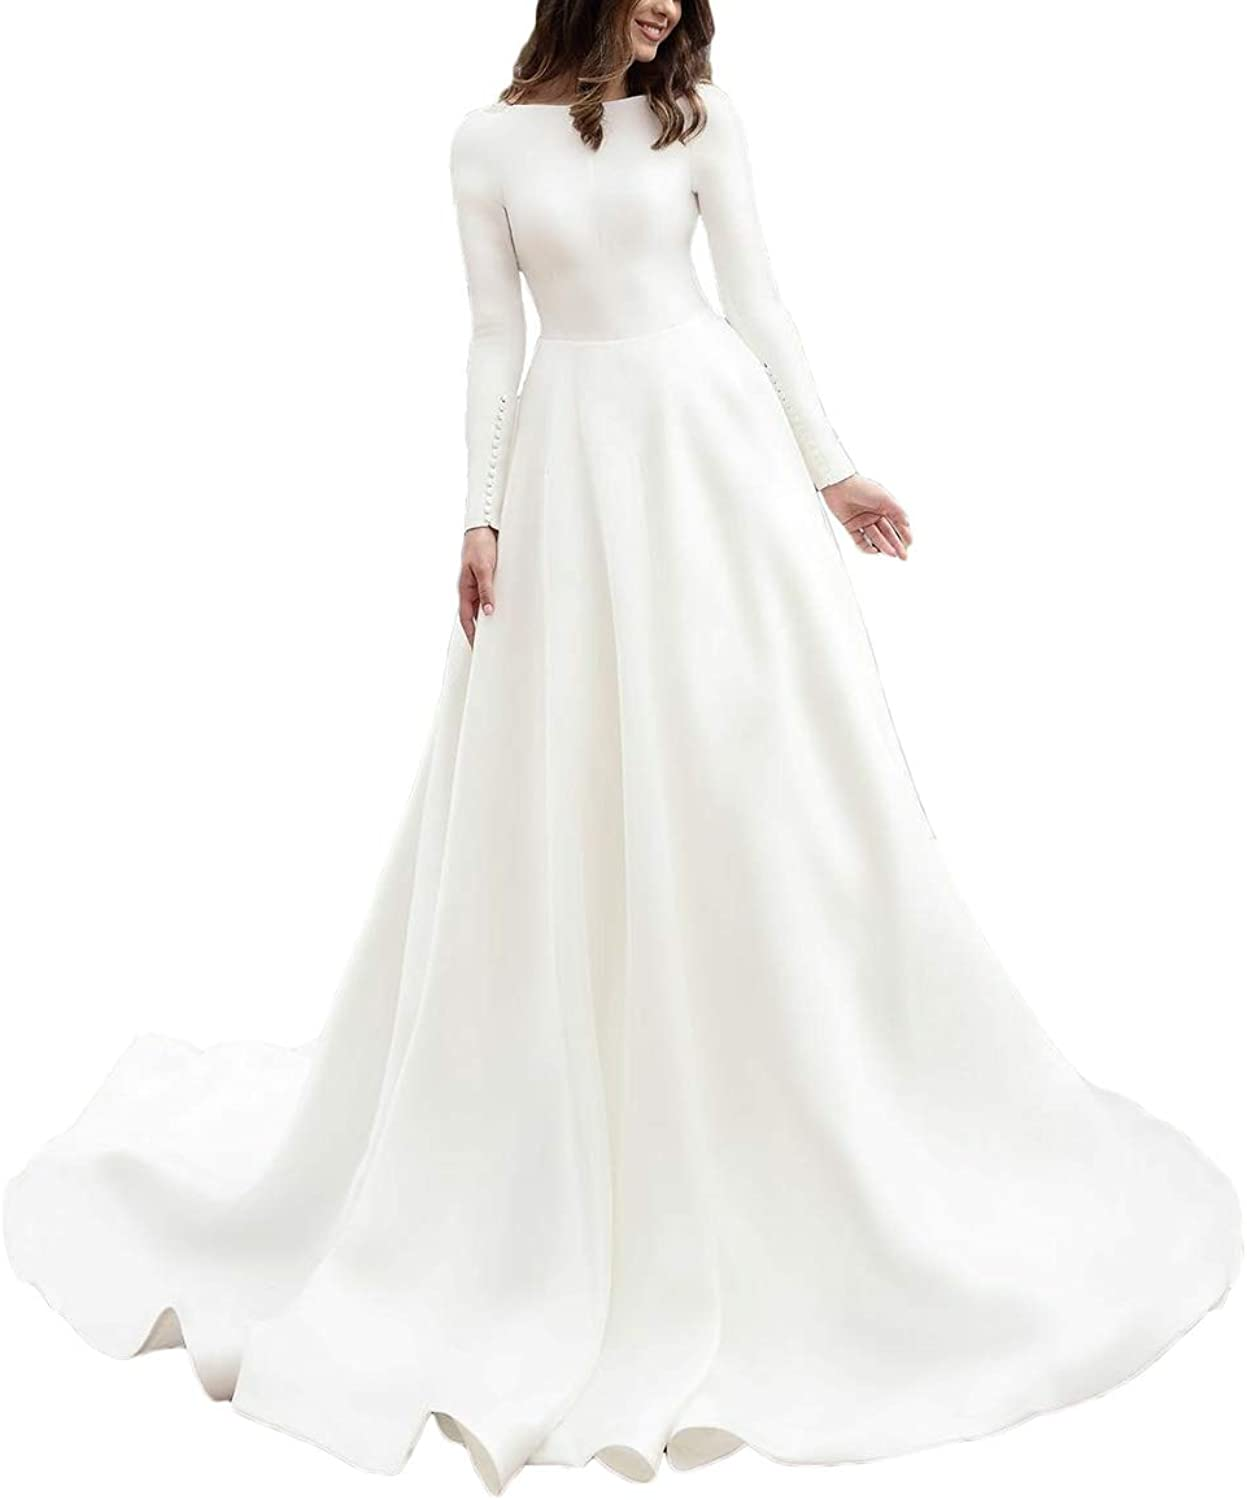 Alilith.Z Elegant Boat Neck Satin Wedding Dresses for Bride 2019 Long Sleeve Bridal Wedding Gowns for Women with Train